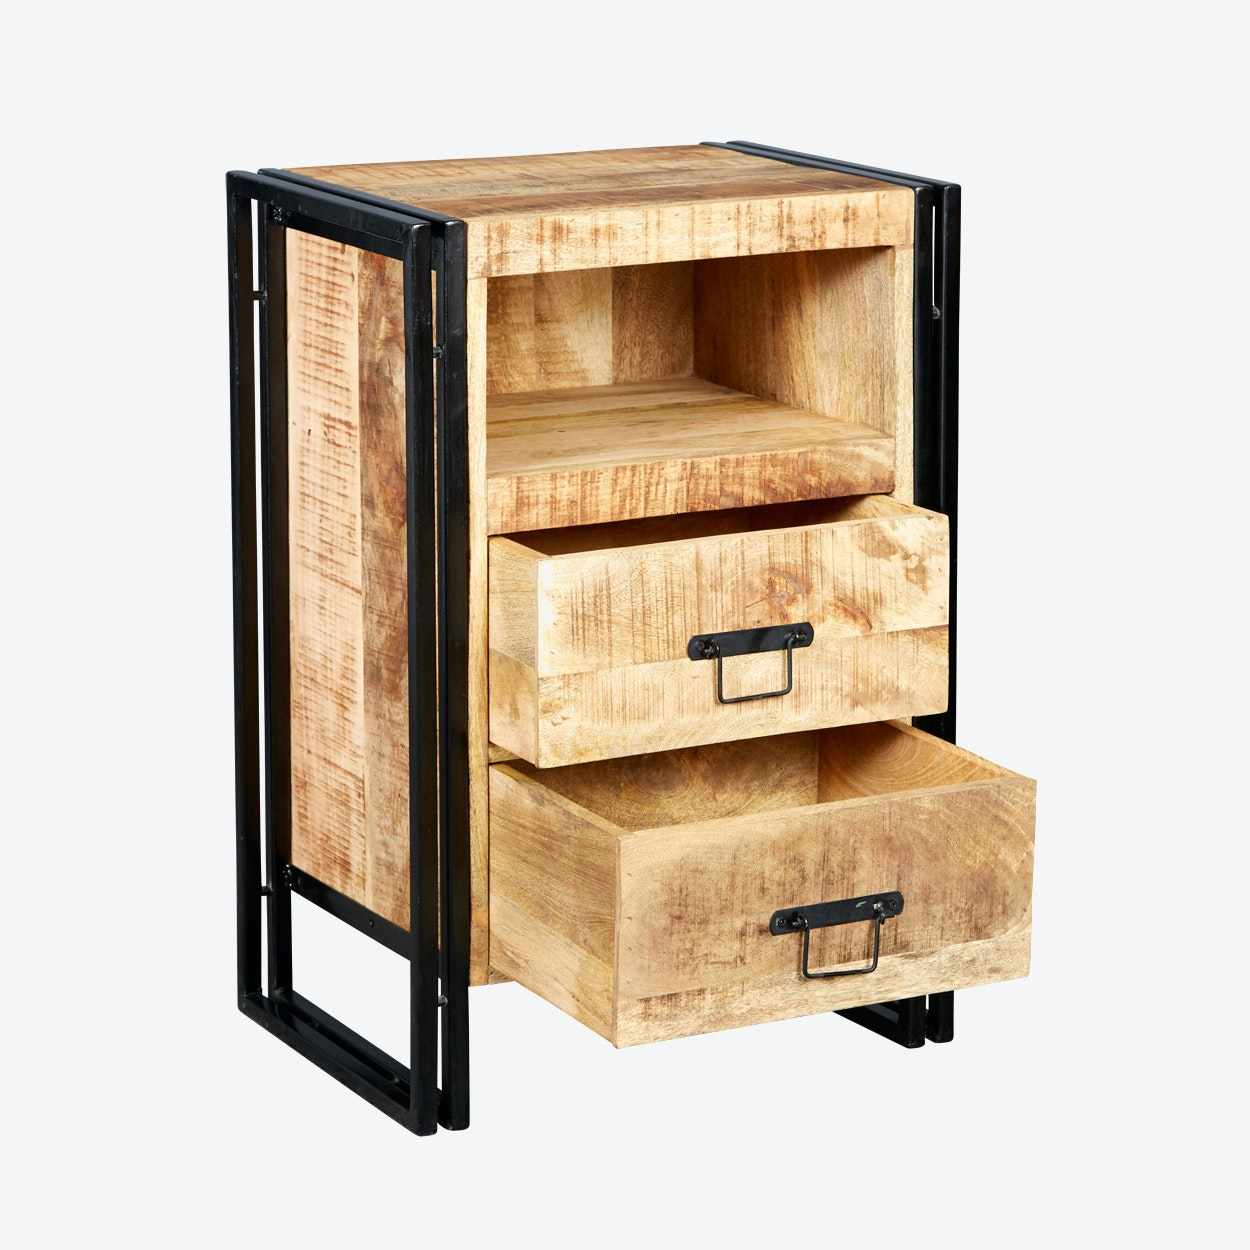 Mango Wood 2 Drawer Side Table Chest By Indian Hub Fy It will make a distinctive addition to your room! mango wood 2 drawer side table chest